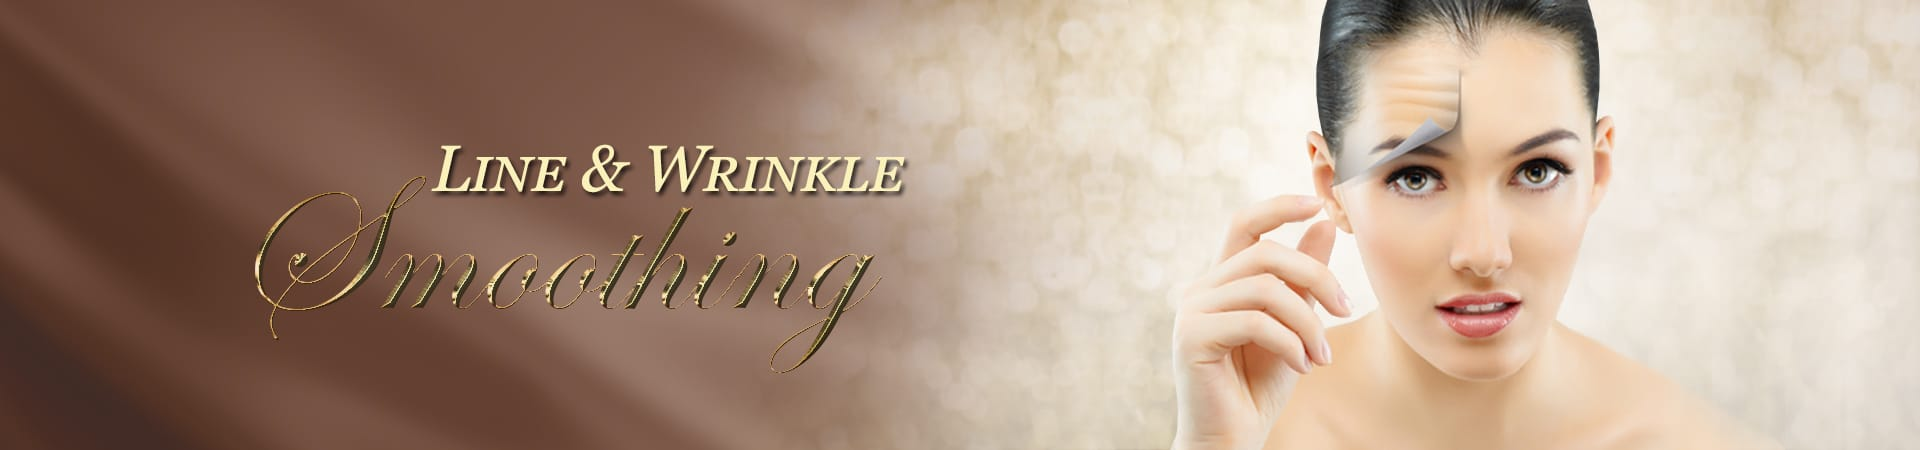 Line & Wrinkle Smoothing - mobile